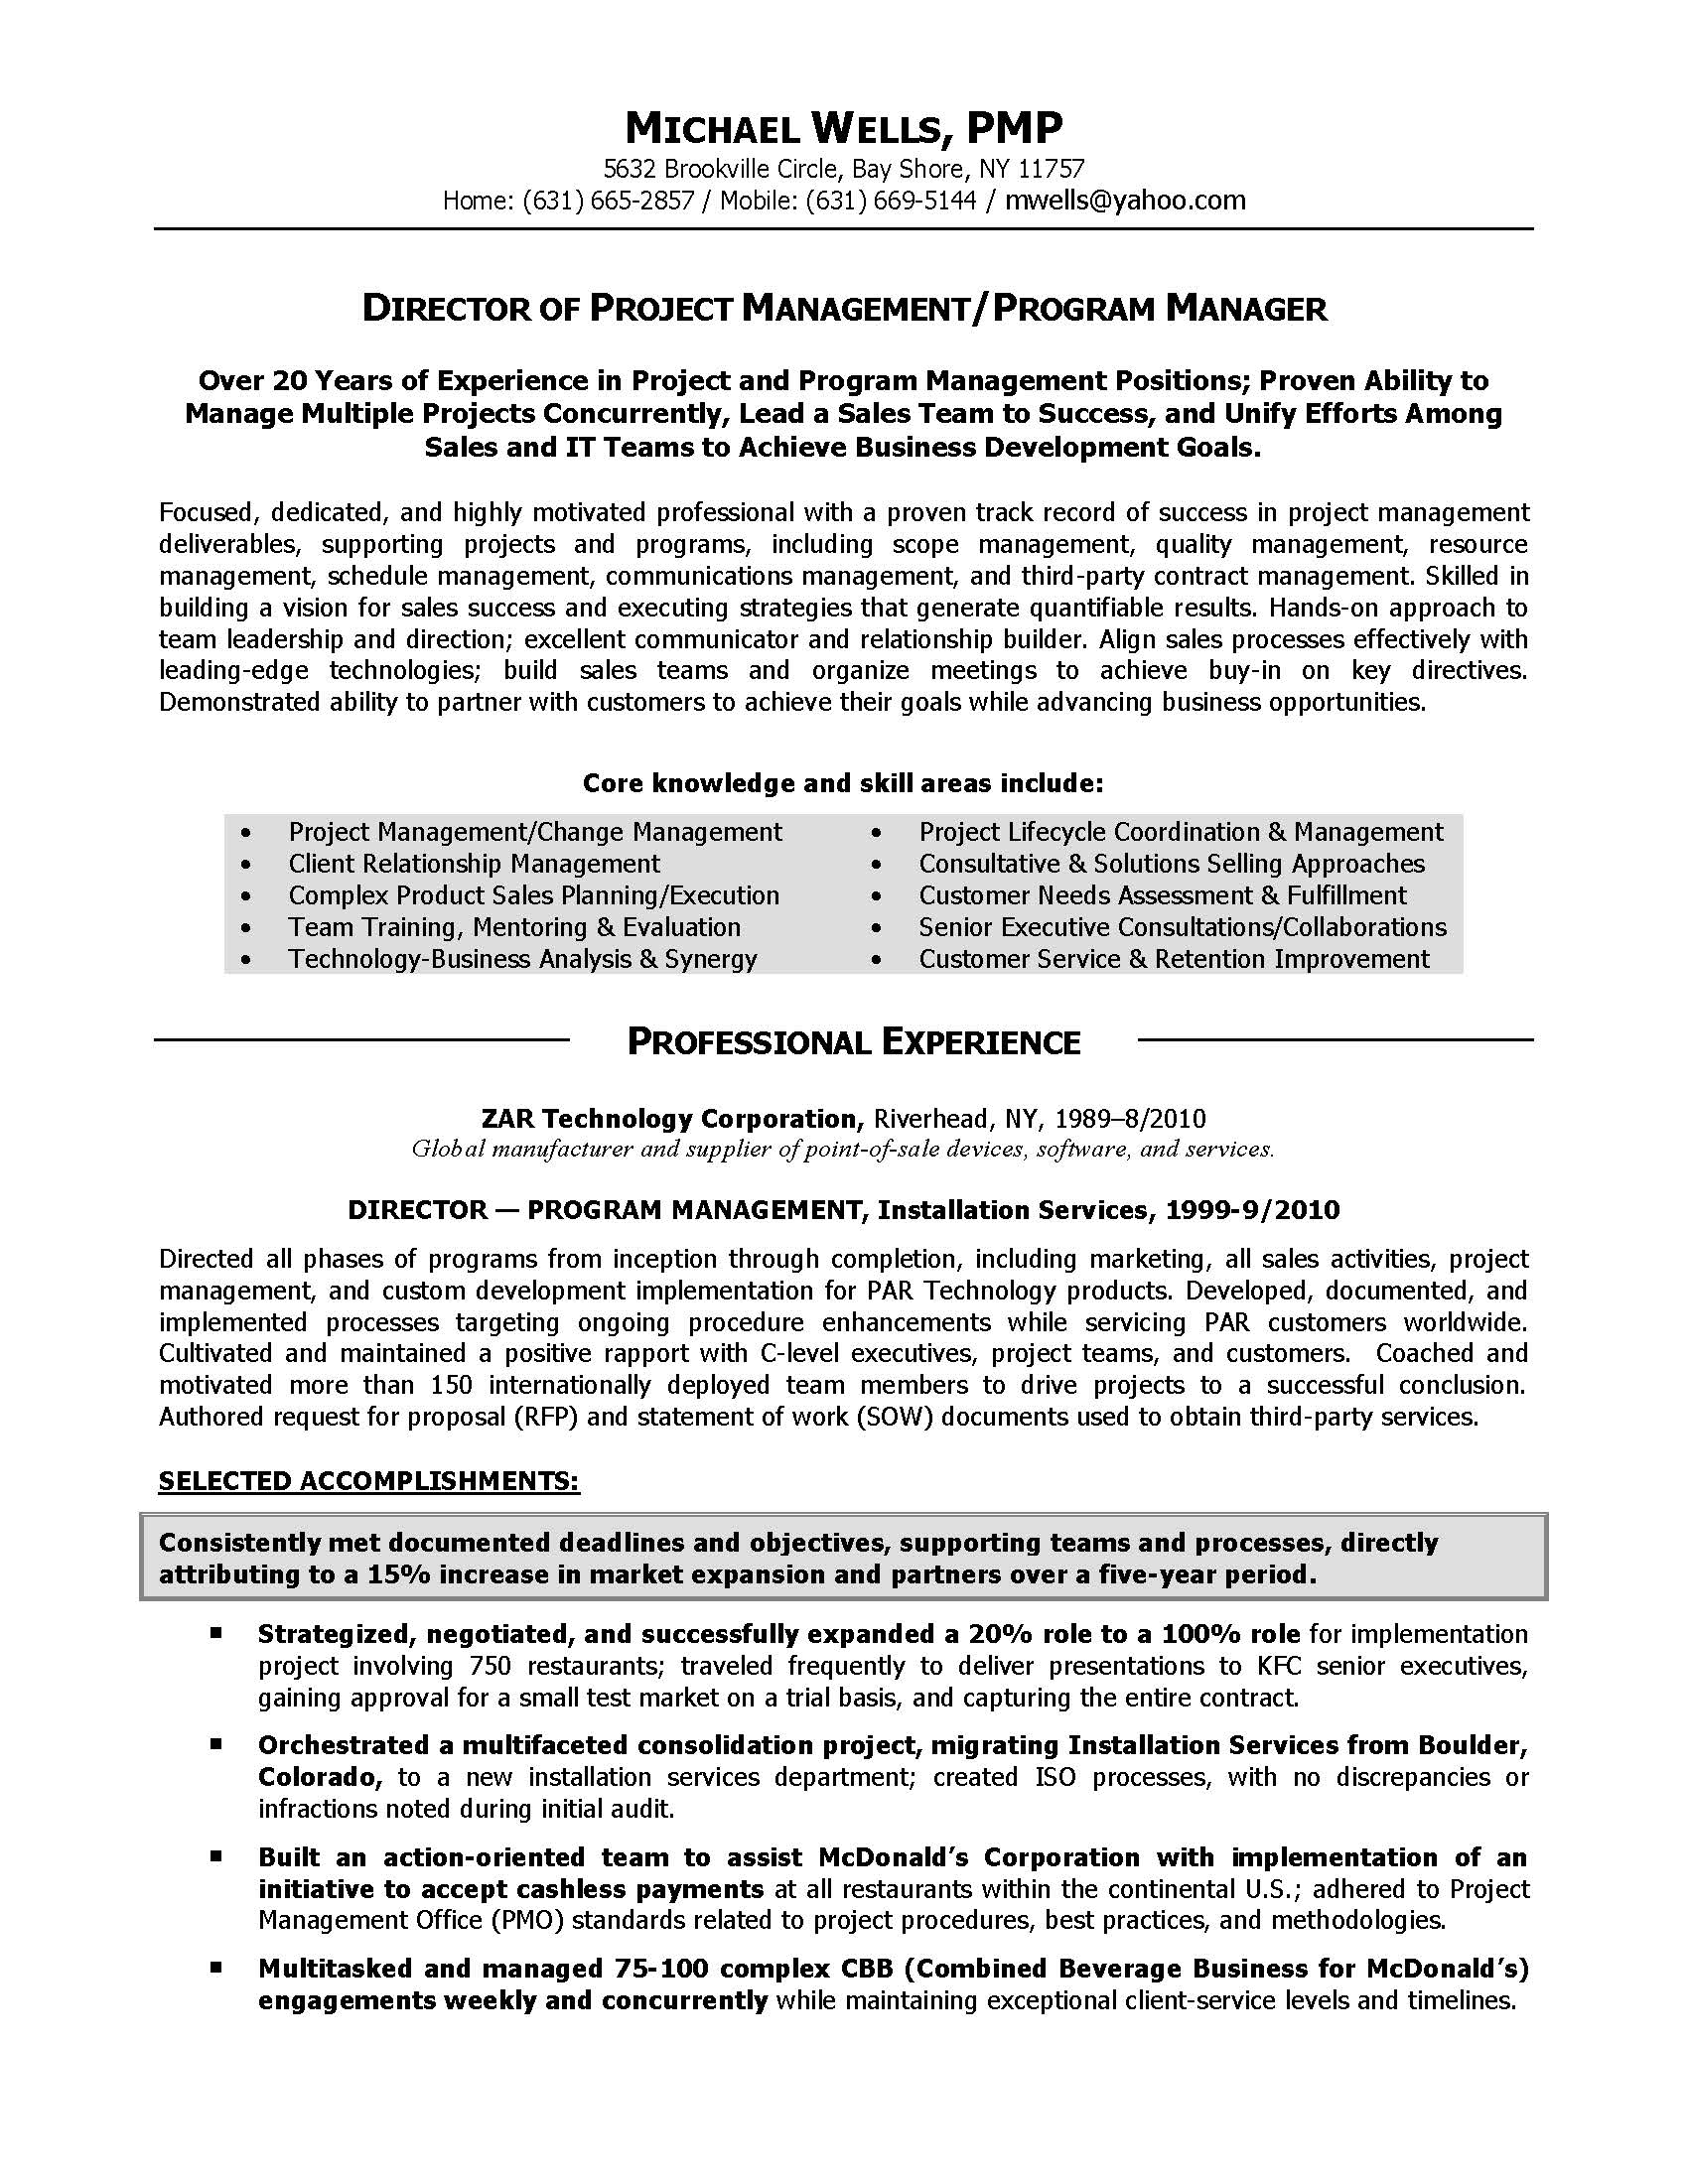 project management director resume sample provided by elite resume writing services - Business Development Sample Resume